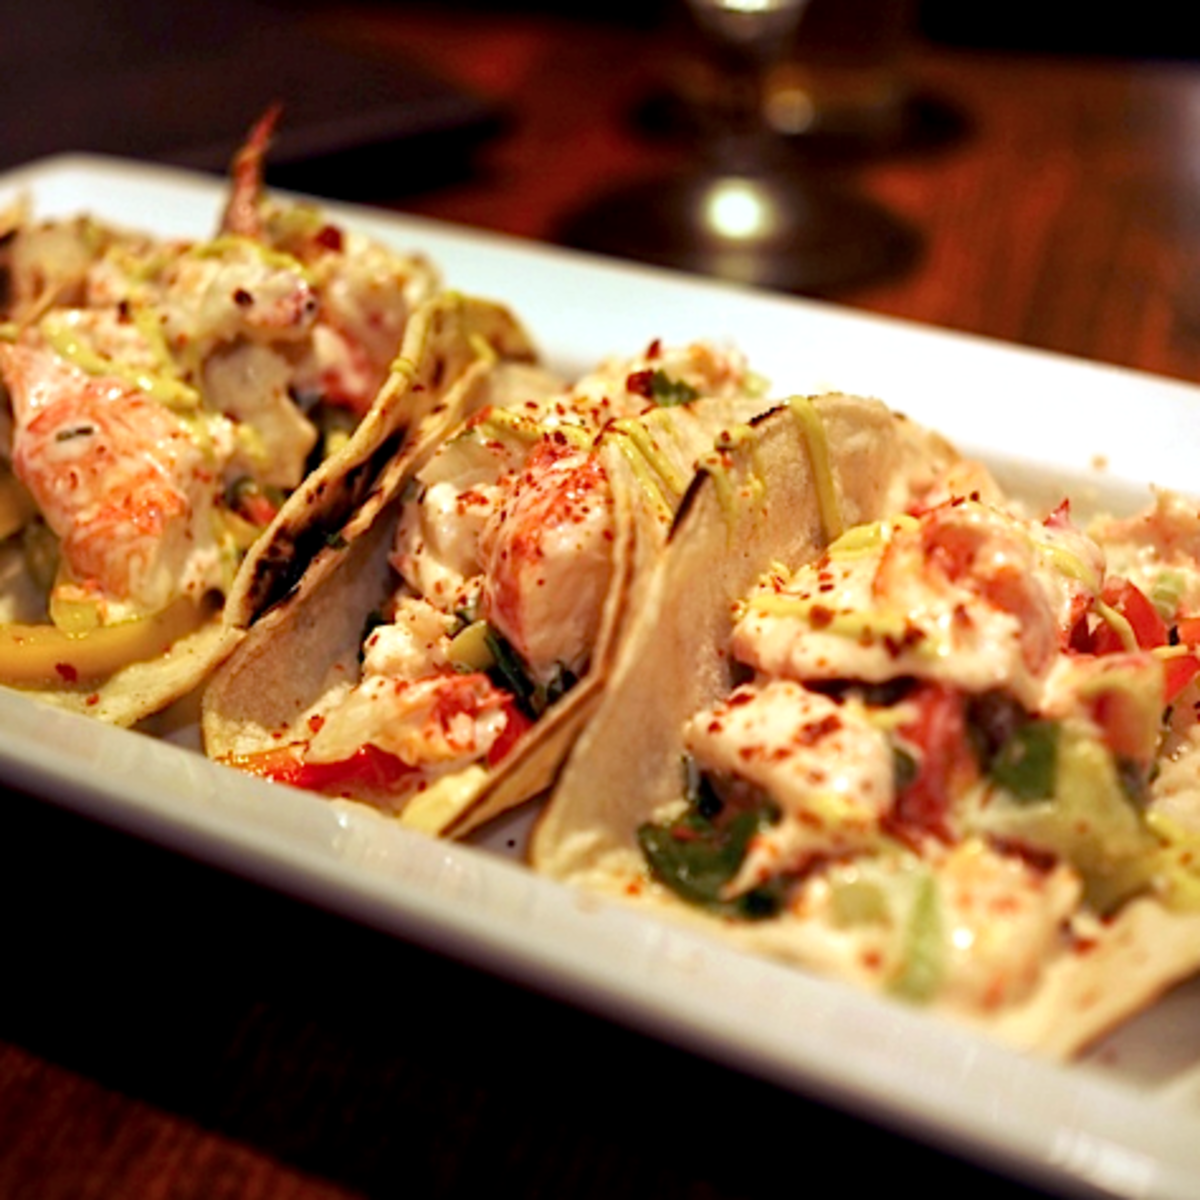 Jonathan's the Rub lobster tacos